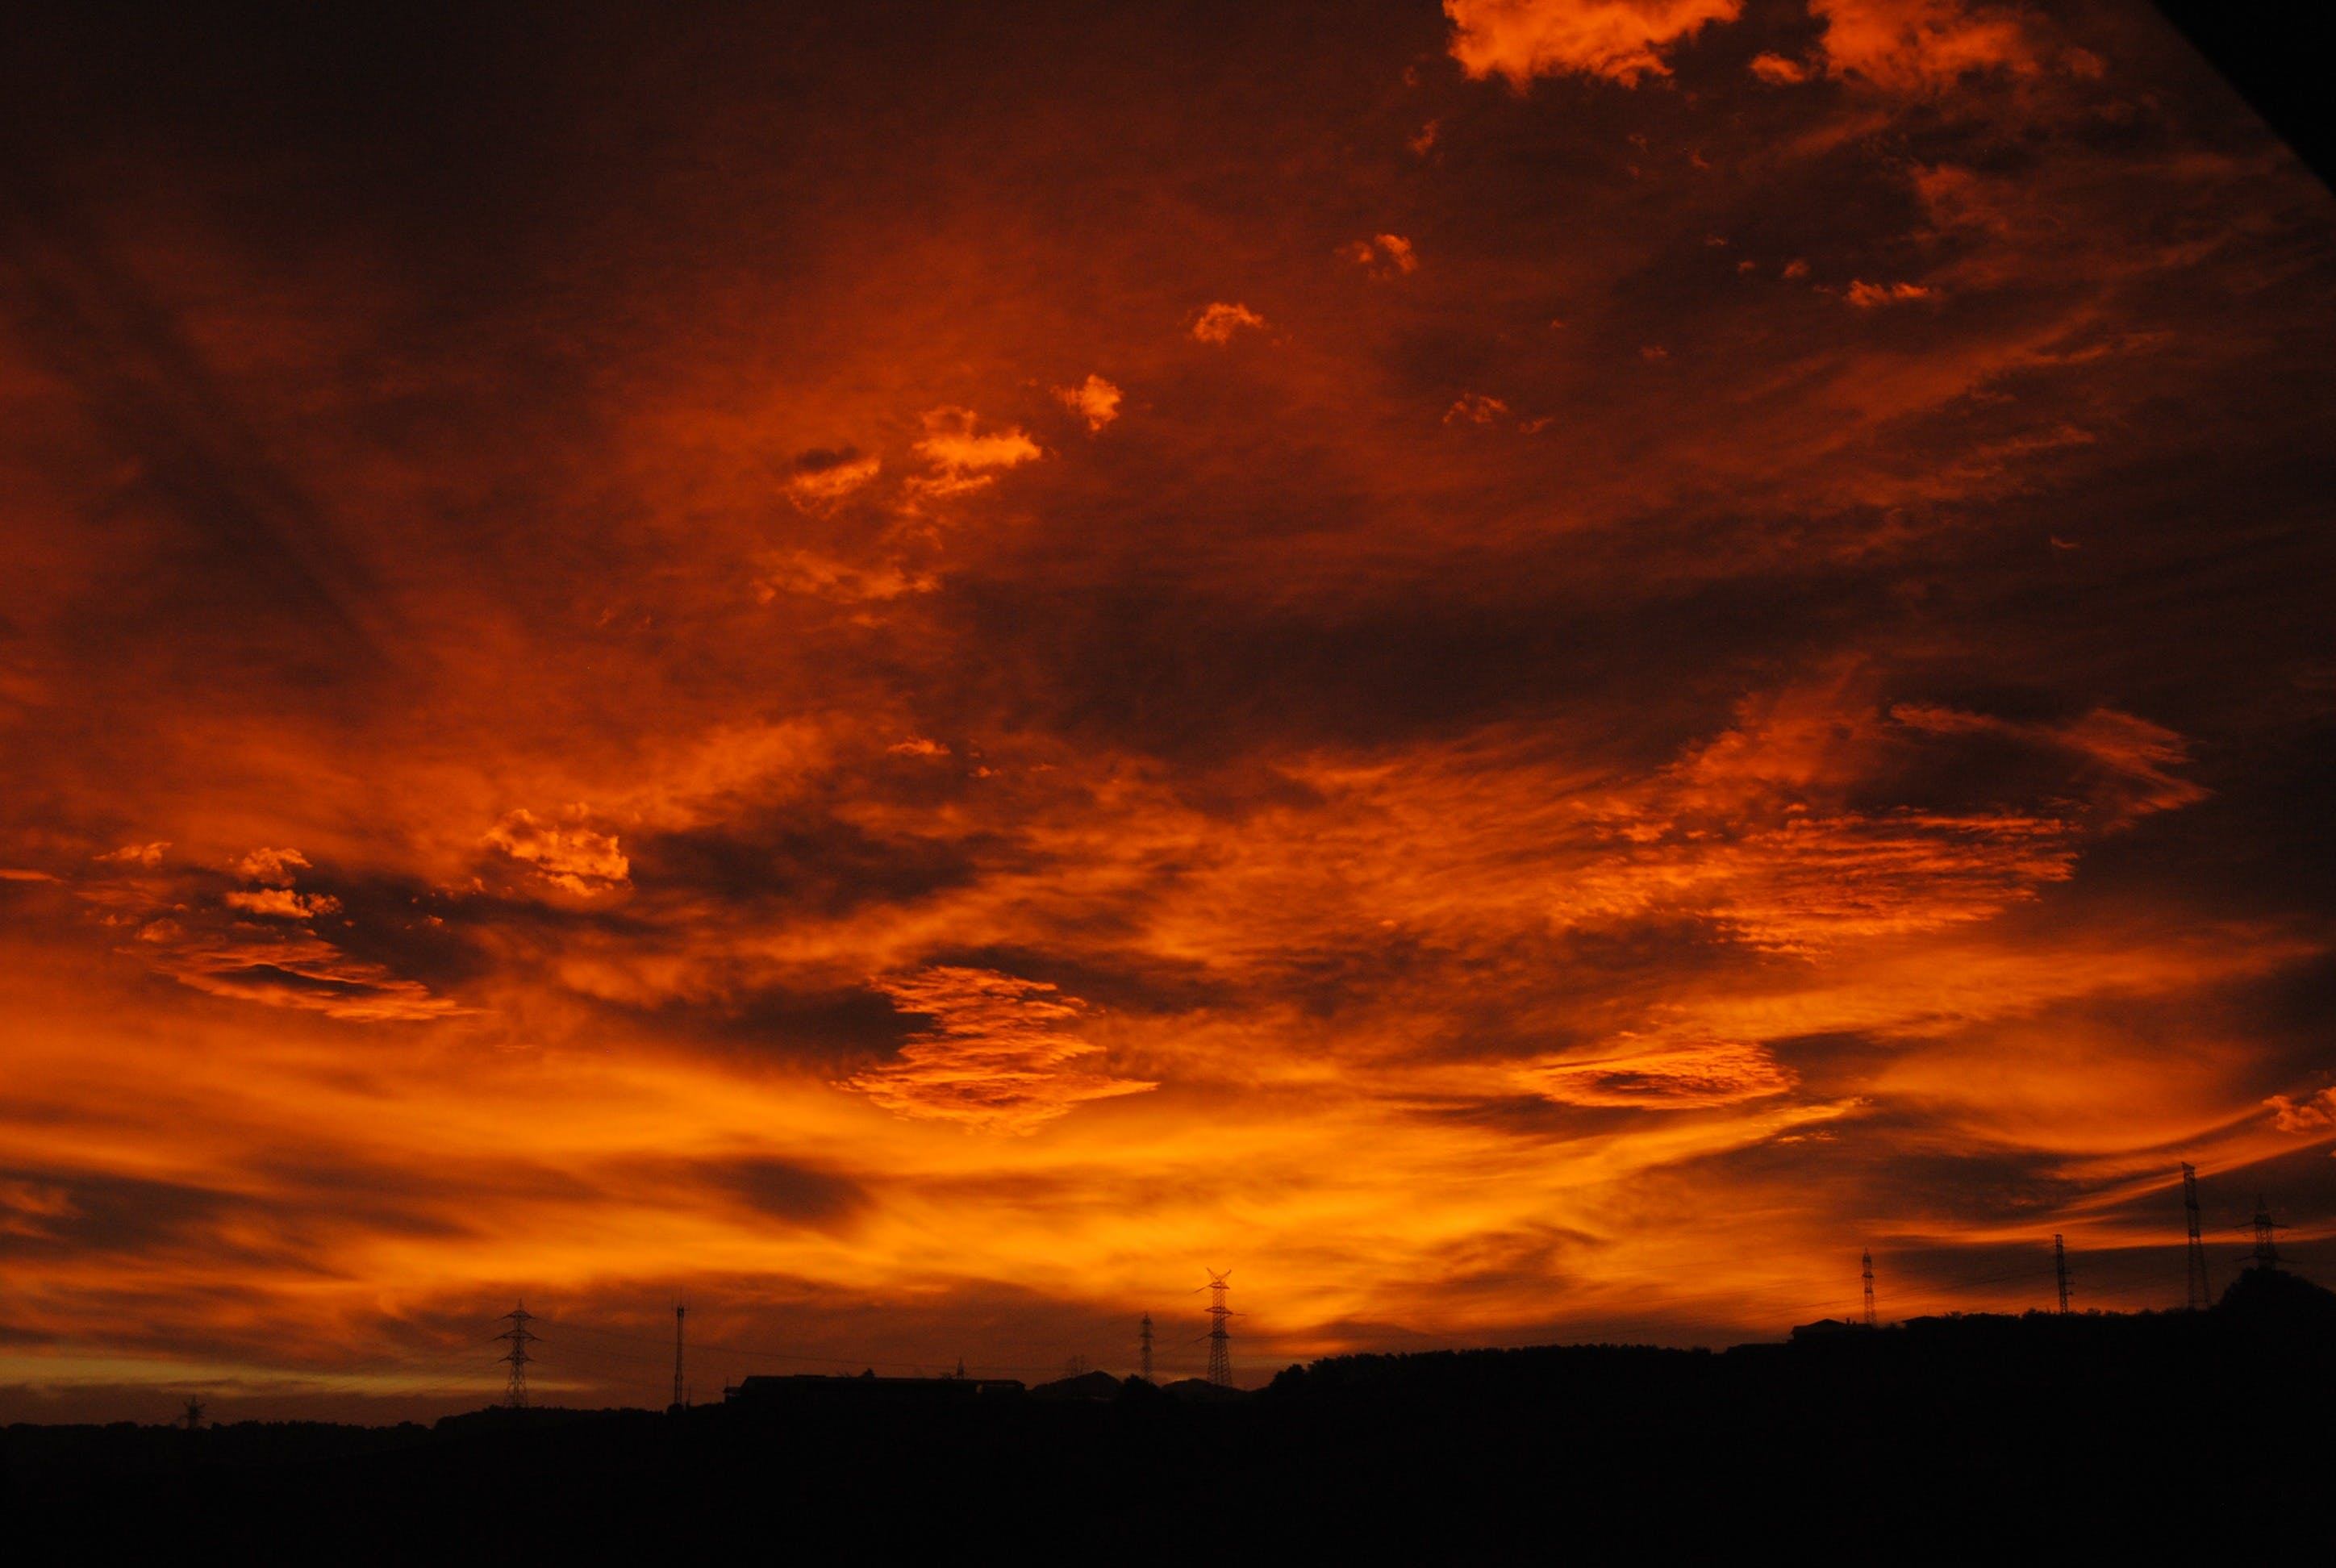 Free stock photo of sky, sunset, red, royalty free